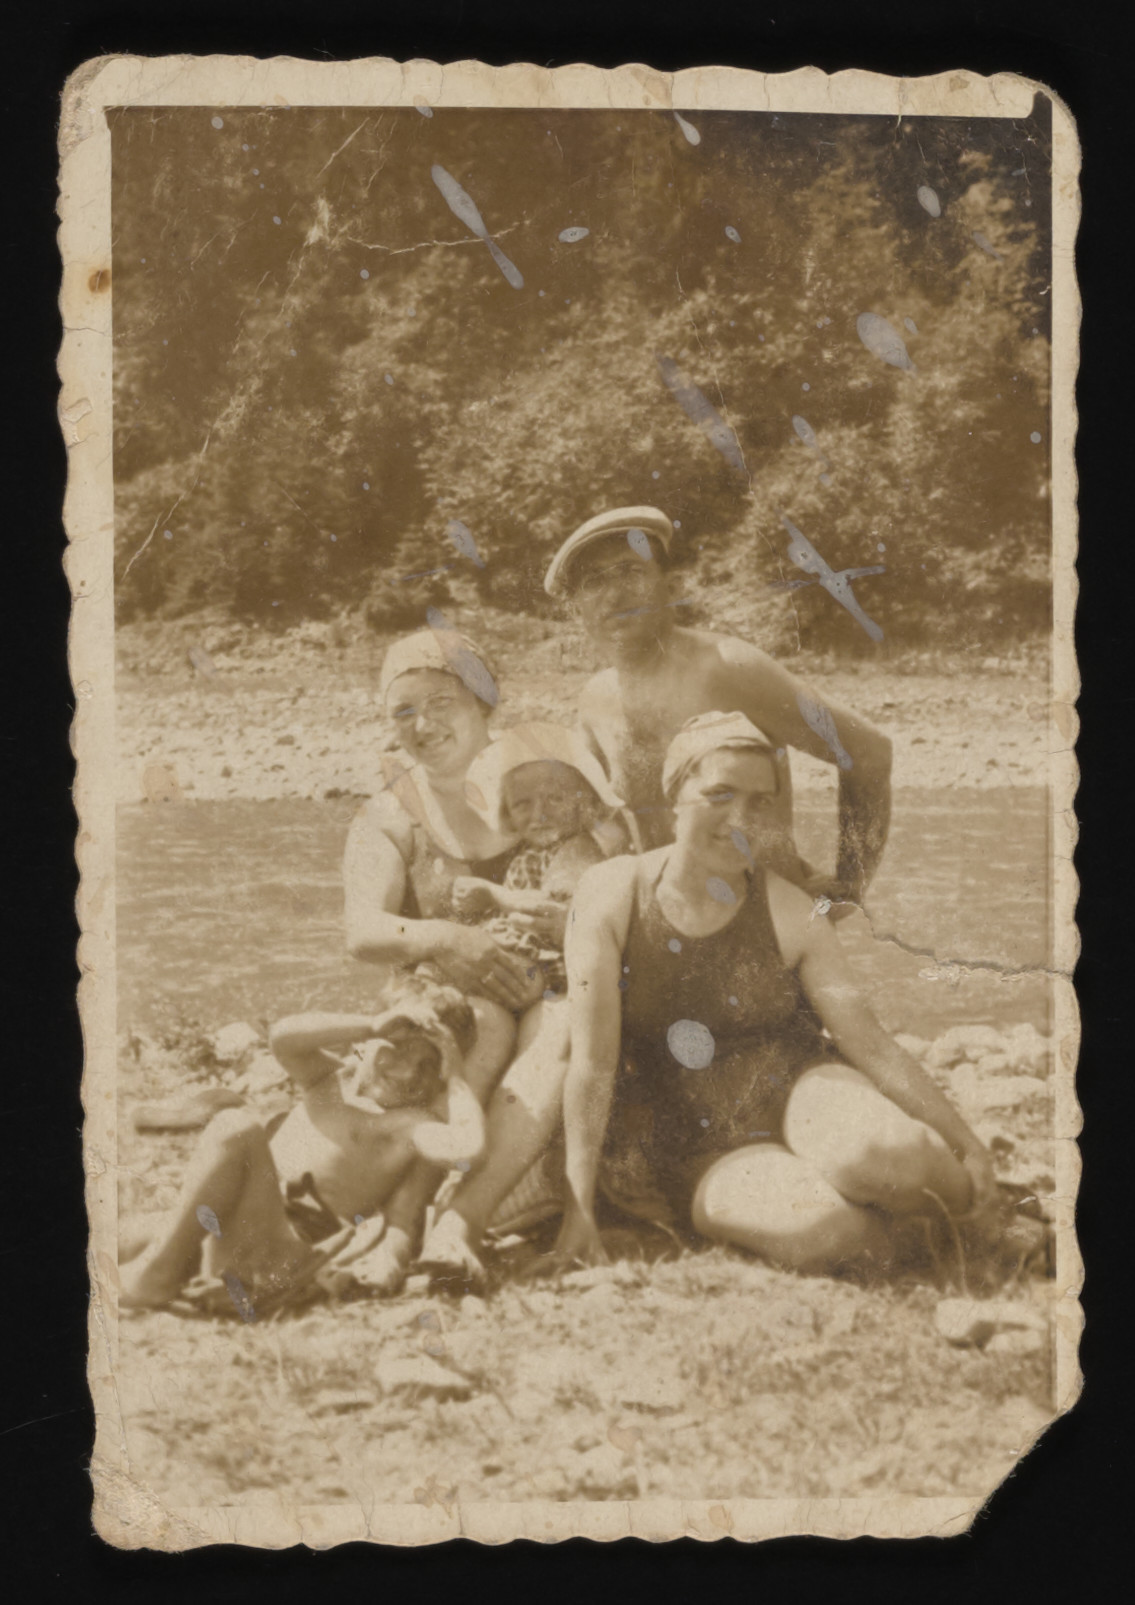 The Drimer family poses on an excursion to a river or lake.  In back are Laura, Irena and Jacob Drimer.  In front are Marcel Drimer and Laura's sister Rywka Gruber.